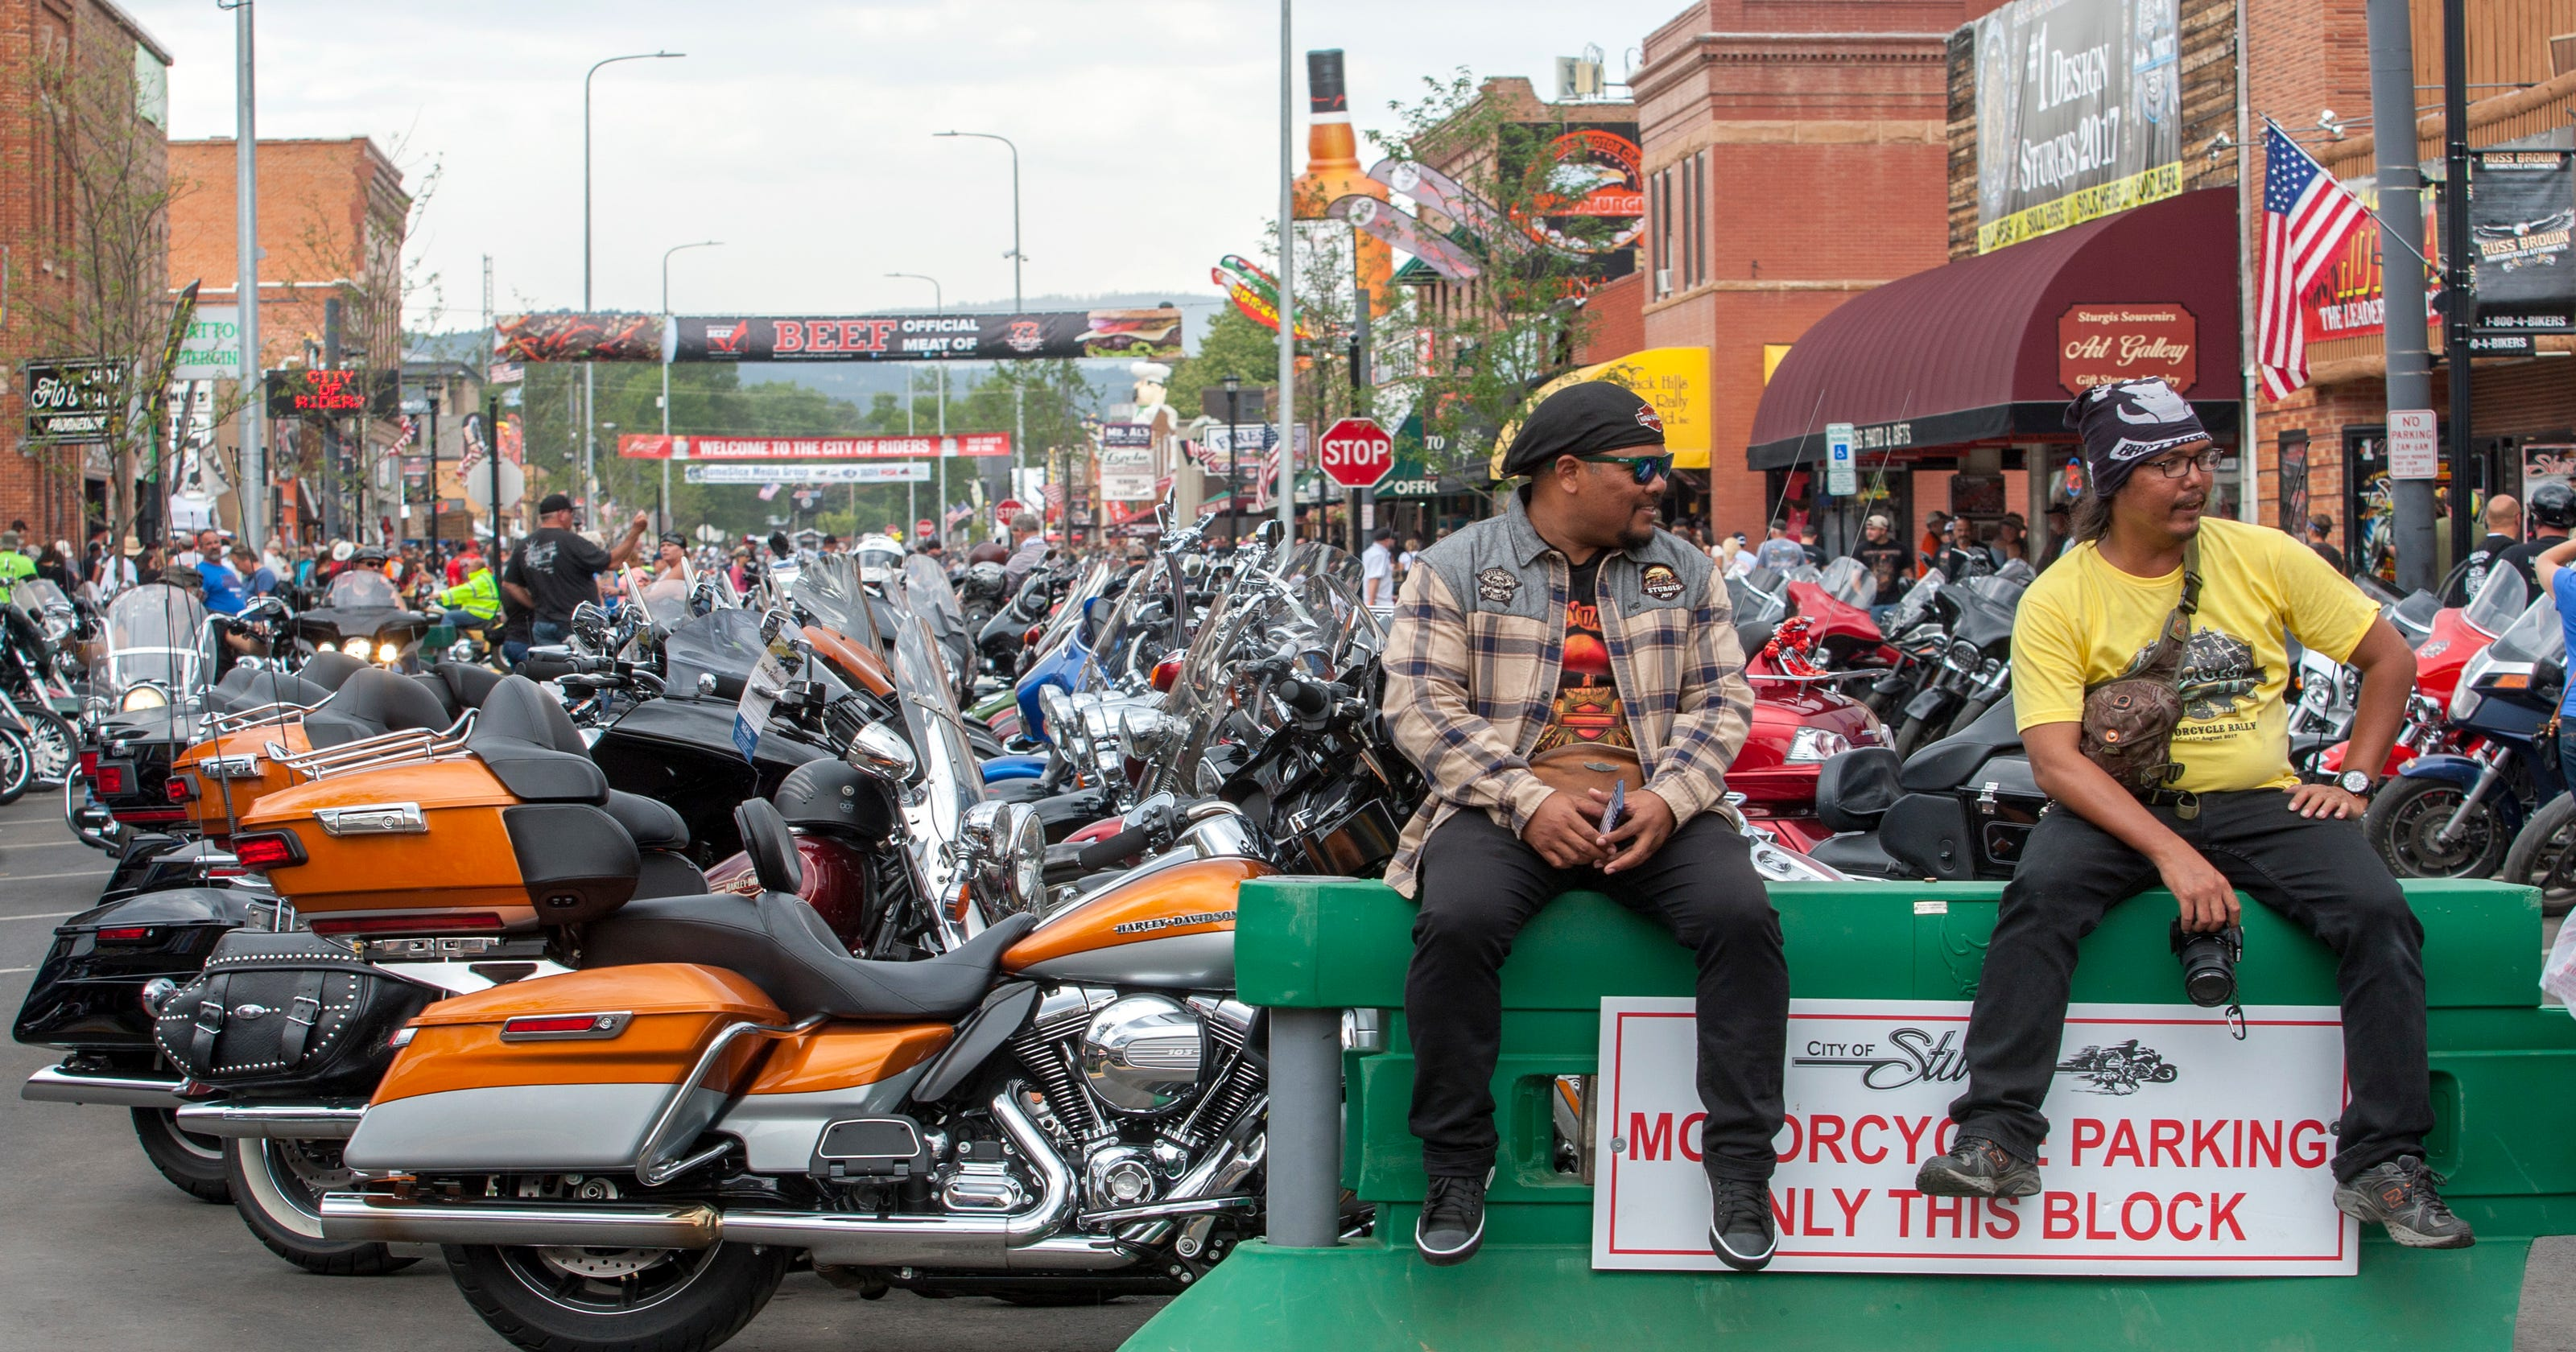 Sturgis Rally 2017: Second fatality reported